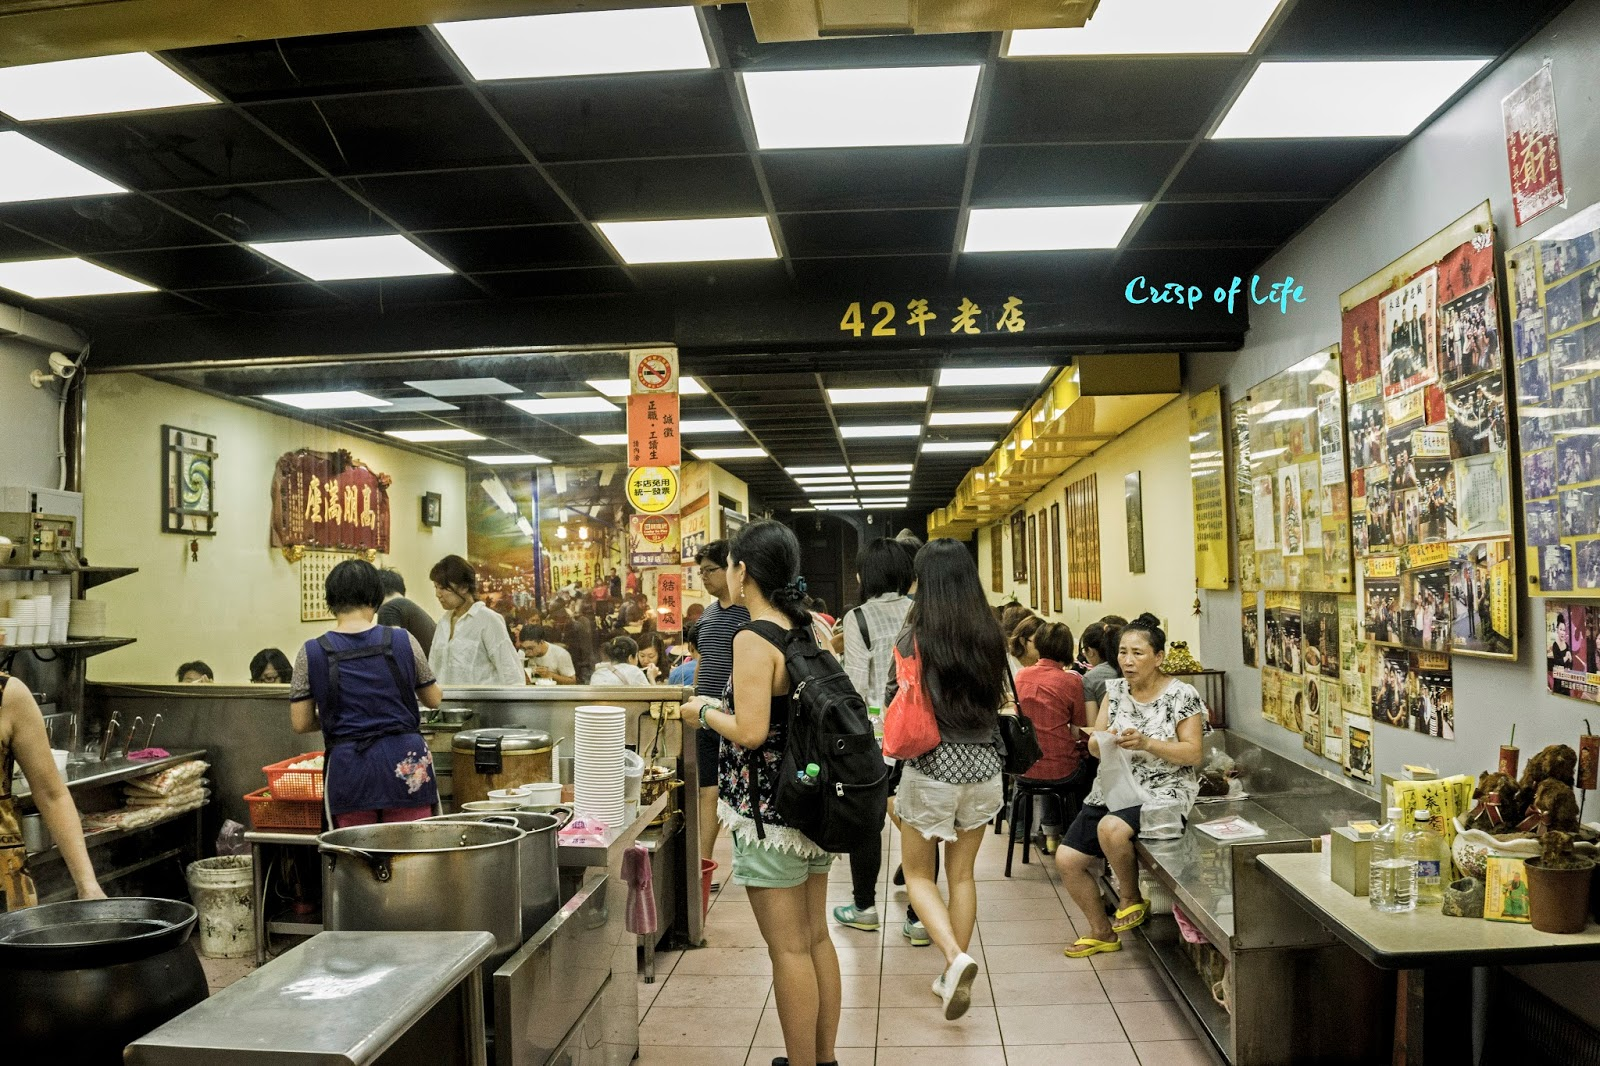 [TAIPEI 台北] Day 2: Shilin night market and Yong He soy drink 士林夜市,永和豆浆